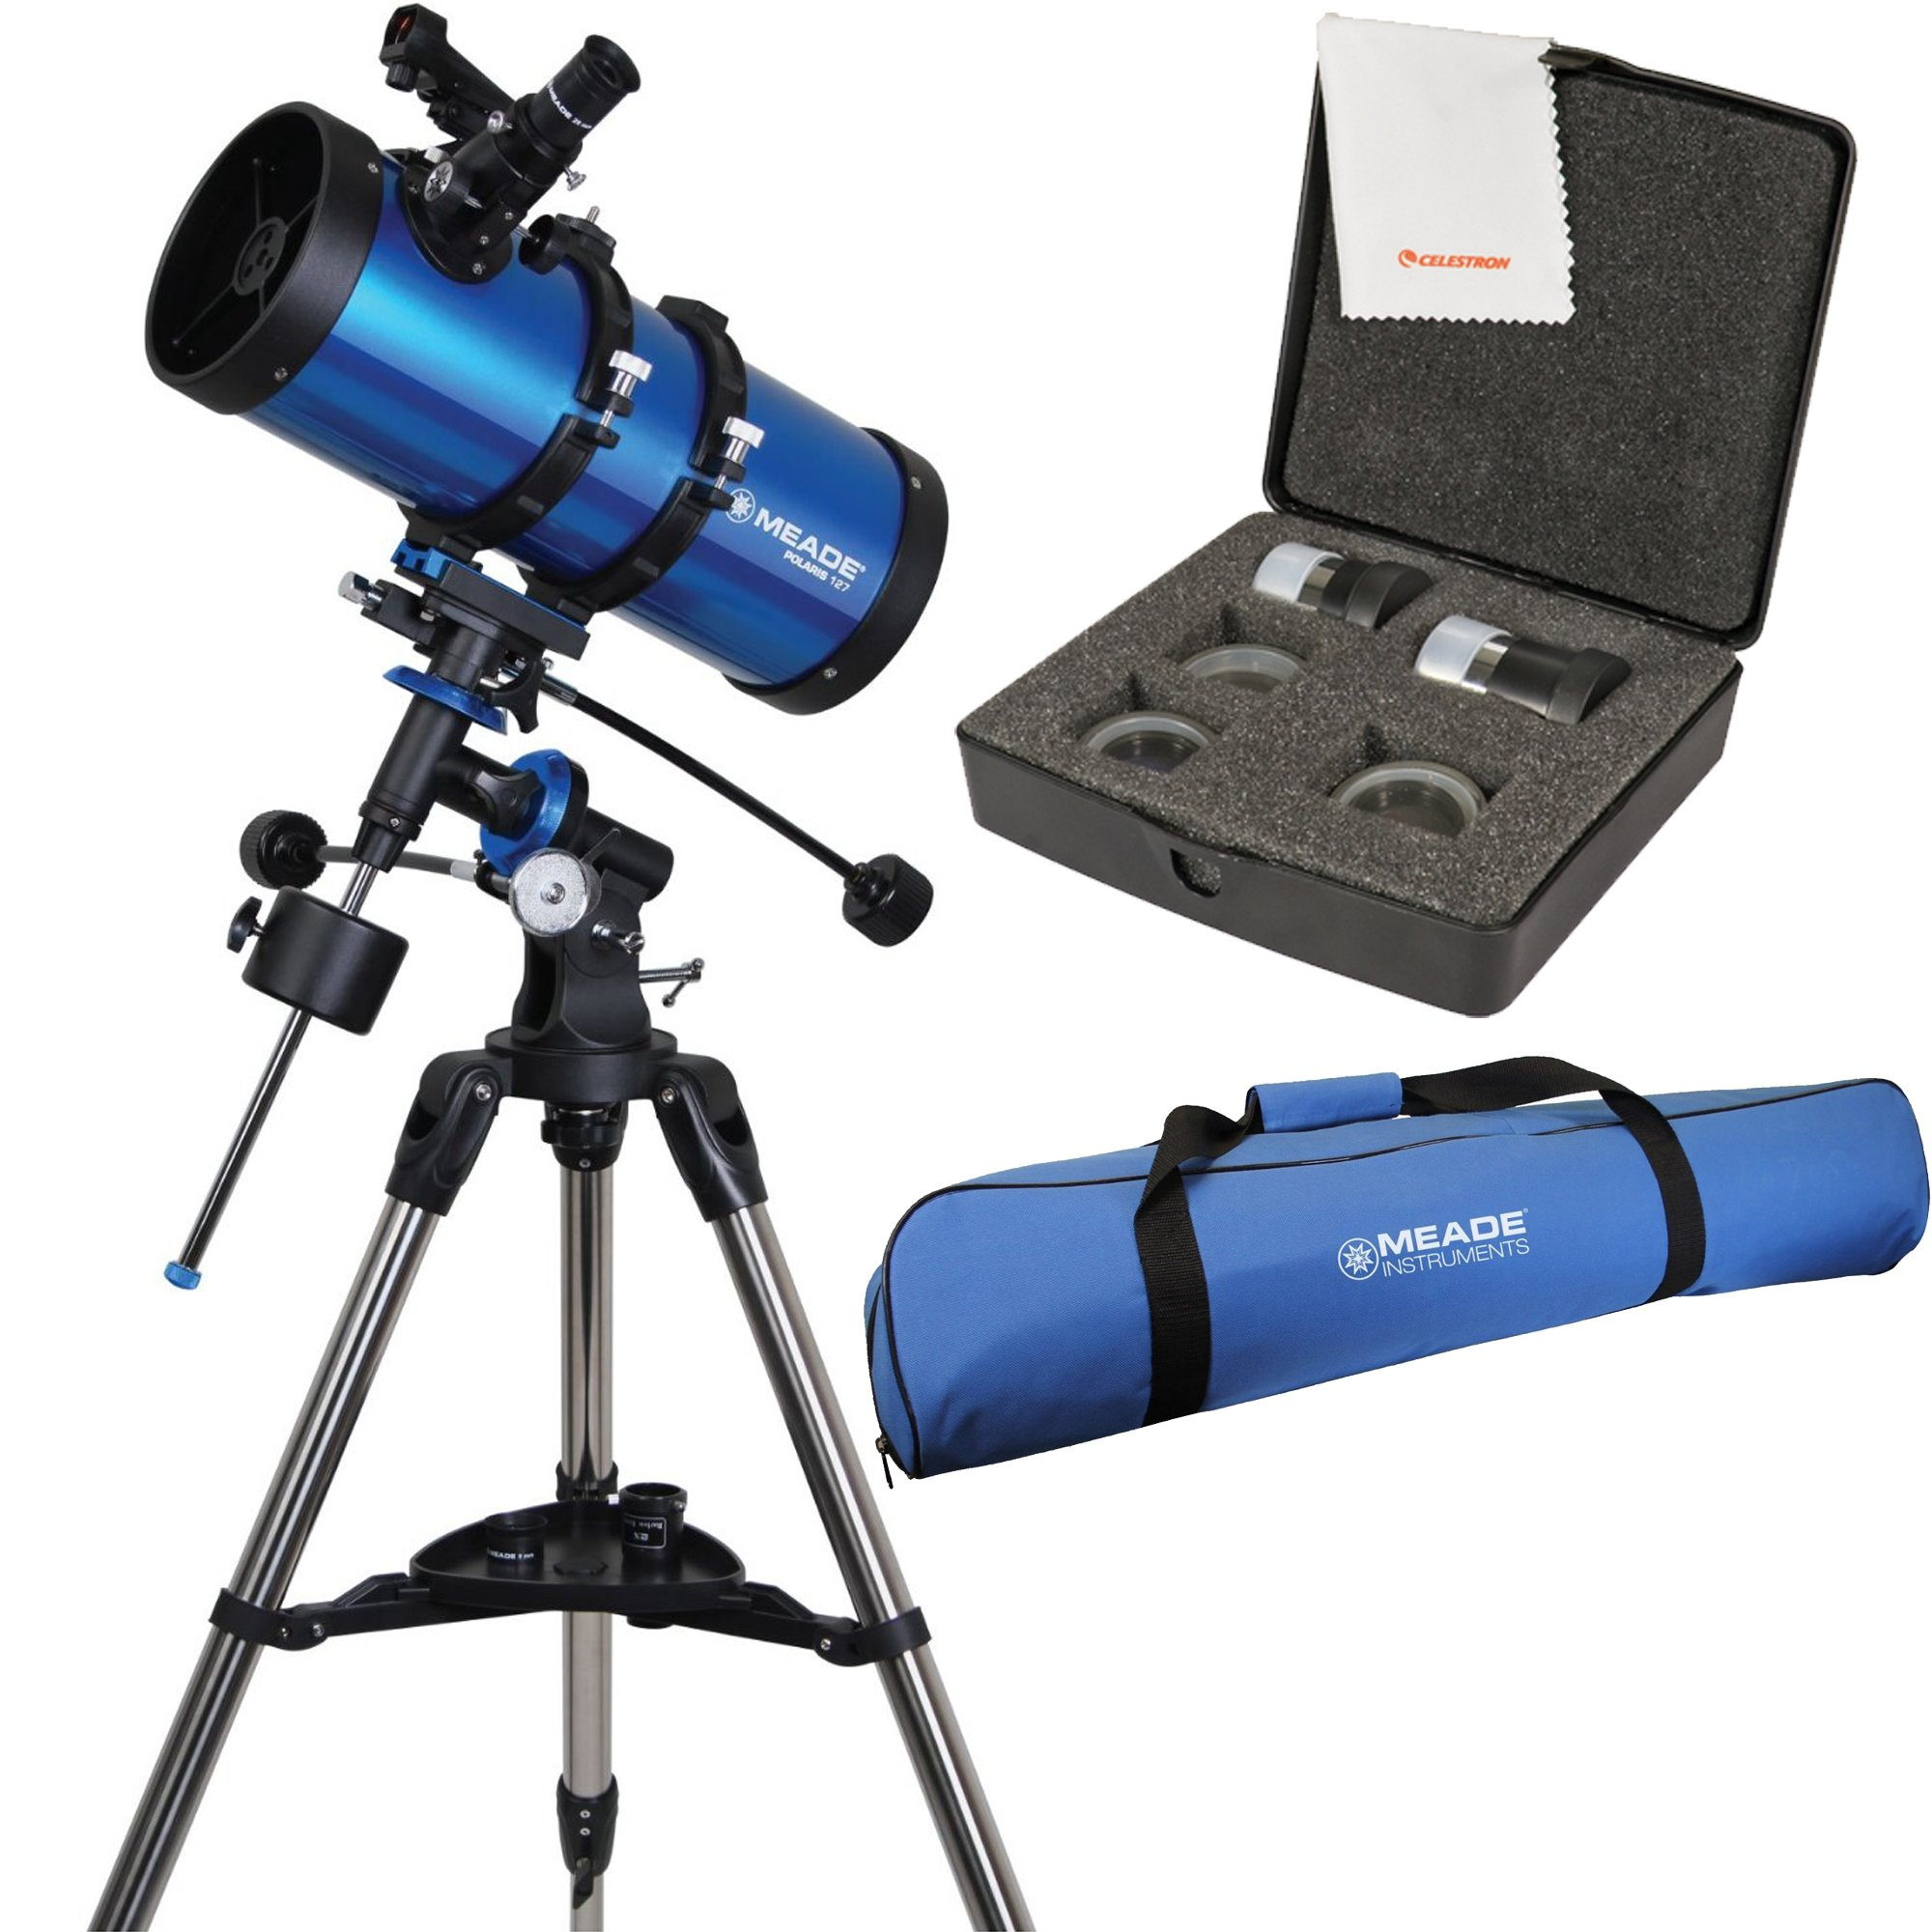 Meade Polaris 127mm f/7.9 Reflector Telescope w/ Travel Bag & Accessory Kit by Meade